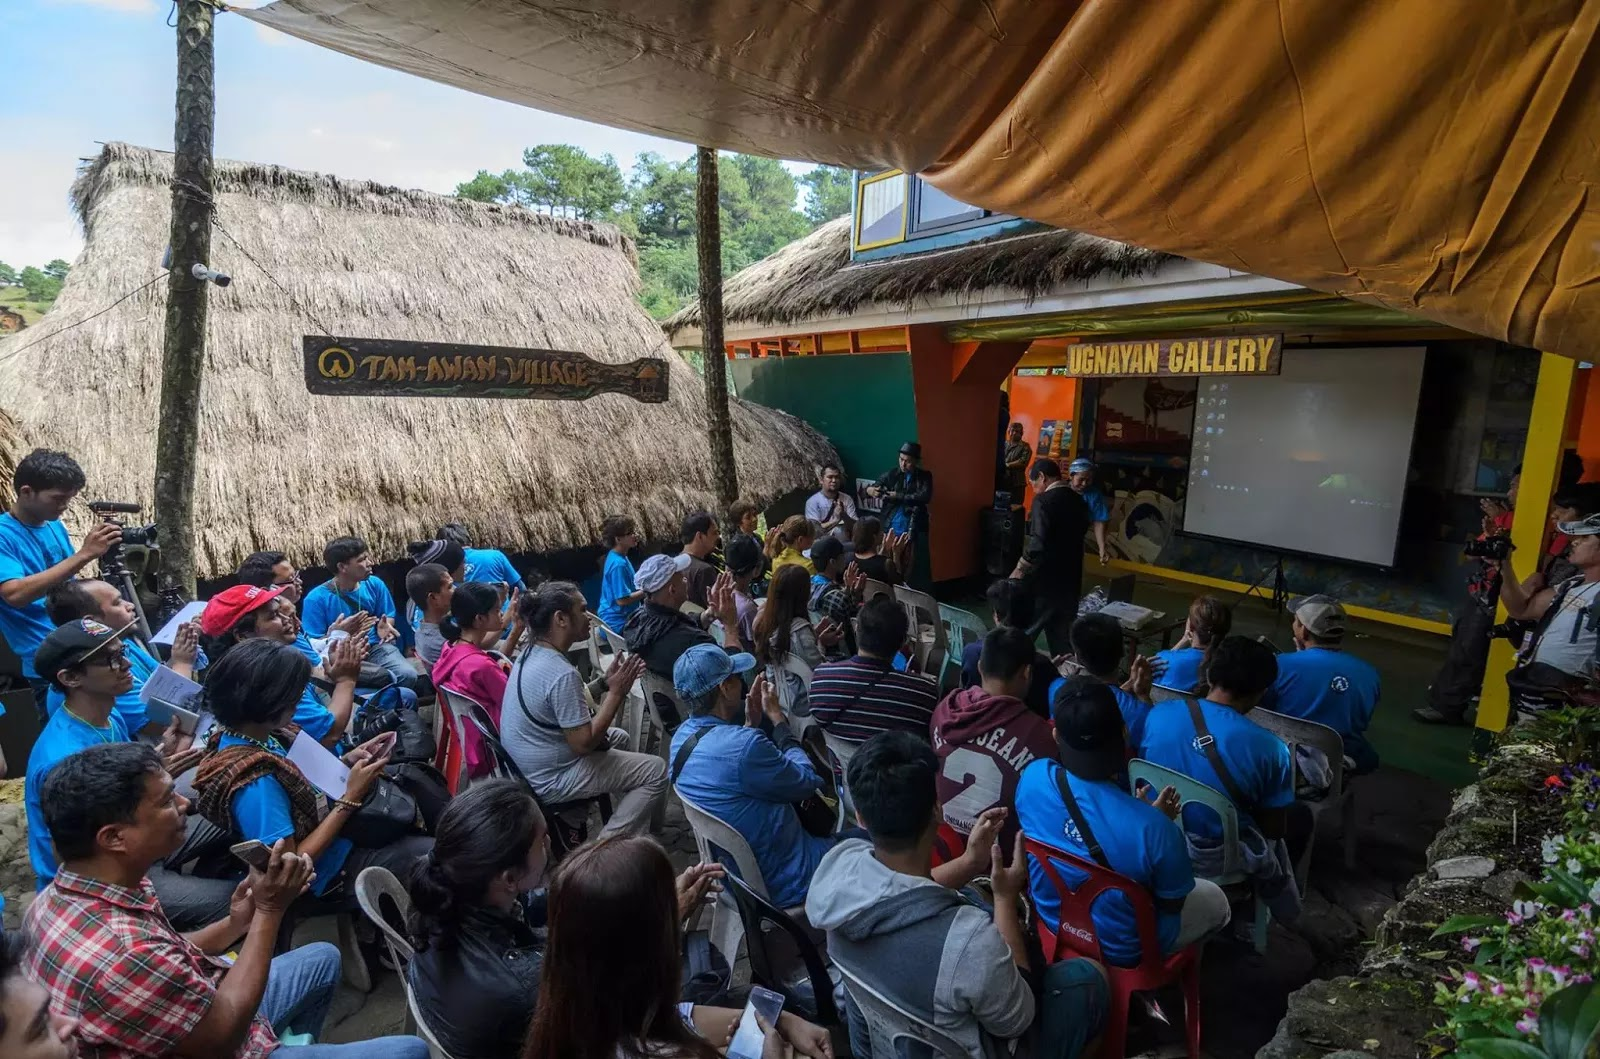 International Arts Festival 8th Tam-awan Baguio City Philippines Keeping the Stones Rolling Opening Ceremonies Audience